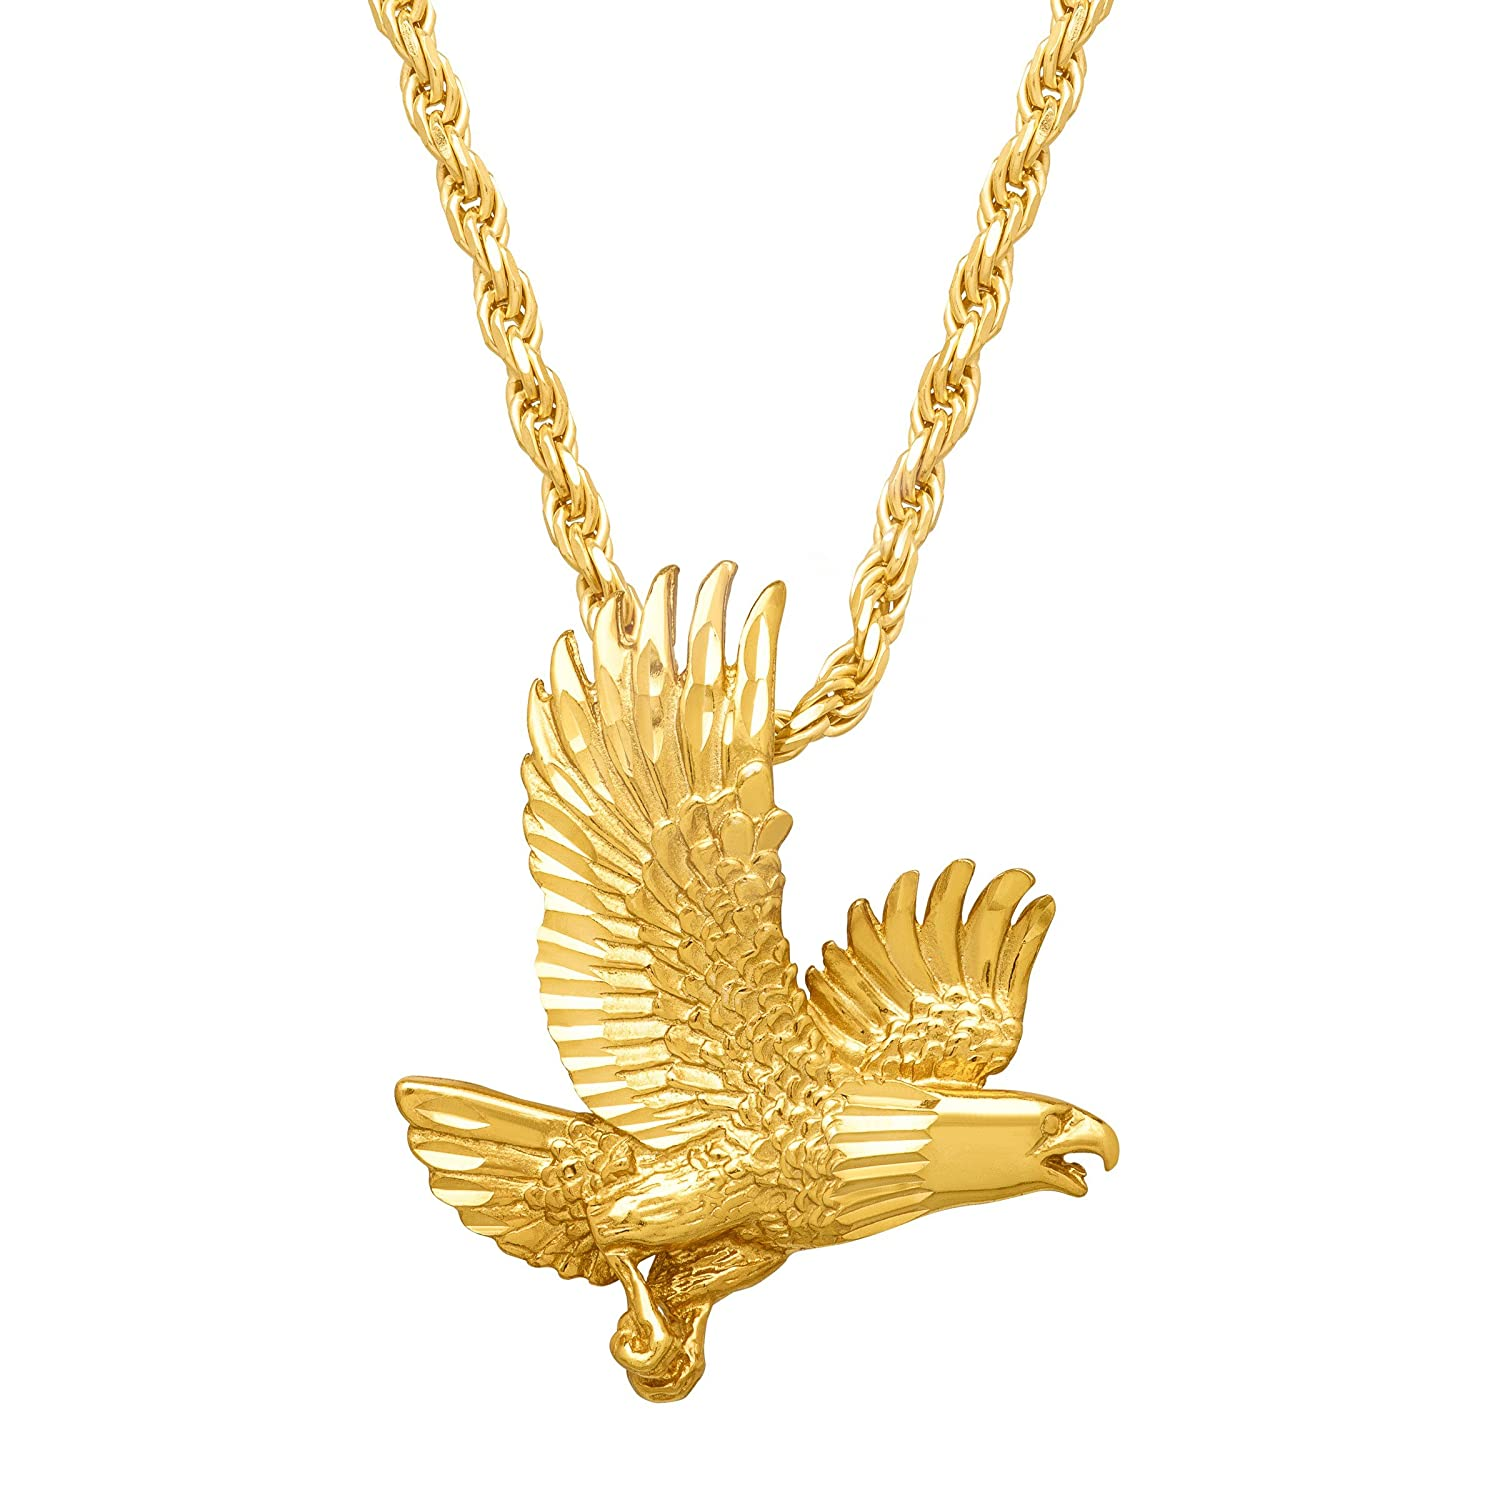 hawk dp necklaces pendant american necklace amazon man eagle gold com brave plated